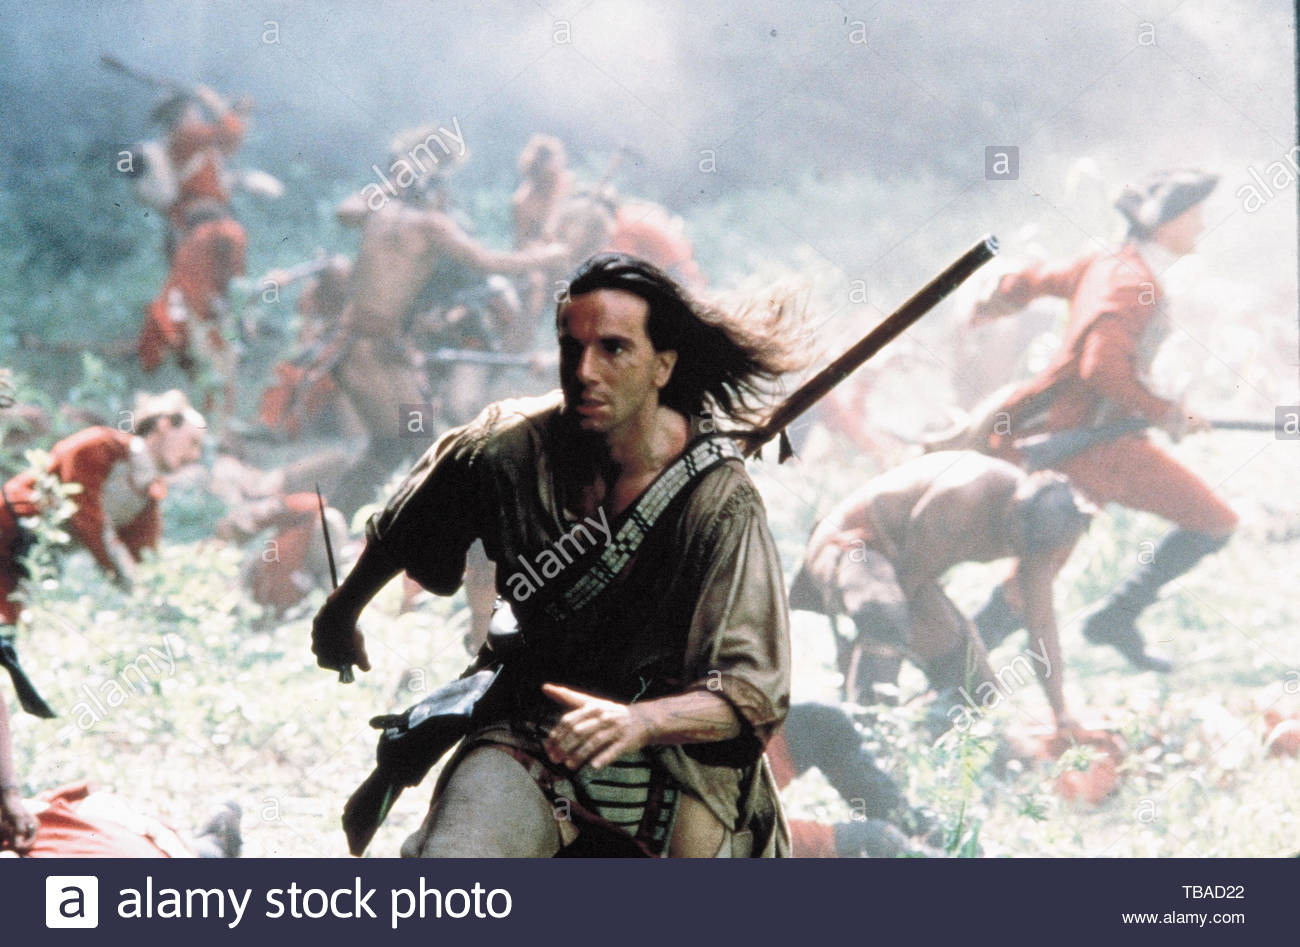 DANIEL DAY-LEWIS in THE LAST OF THE MOHICANS (1992). Copyright: Editorial inside use only. This is a publicly distributed handout. Access rights only, no license of copyright provided. Mandatory authorization to Visual Icon (www.visual-icon.com) is required for the reproduction of this image. Credit: 20TH CENTURY FOX/MORGAN CREEK / Album - Stock Image